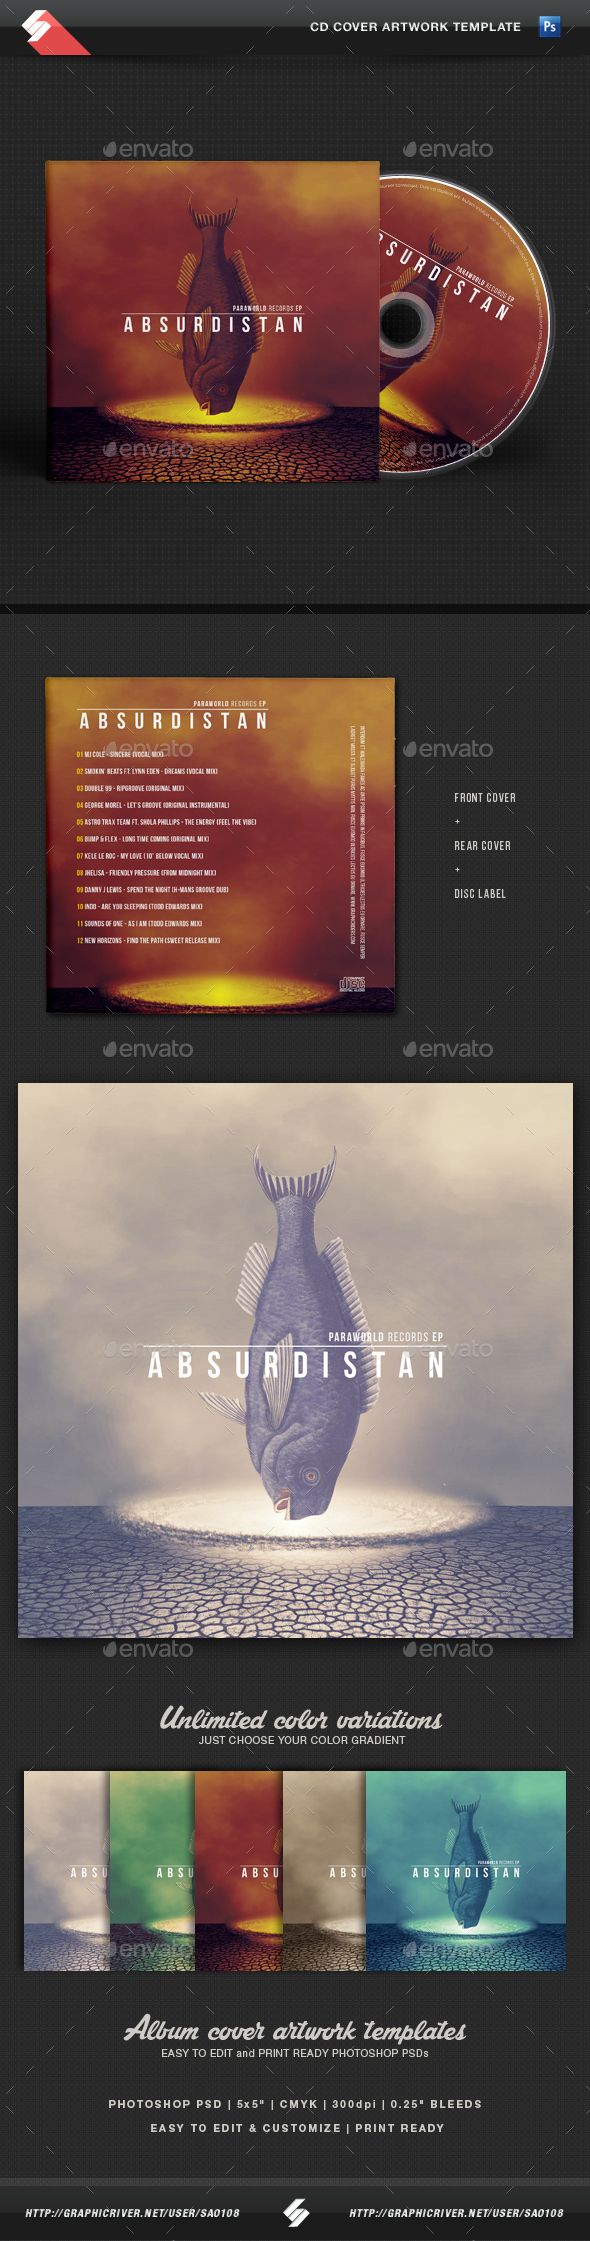 Absurdistan - CD Cover Artwork Template